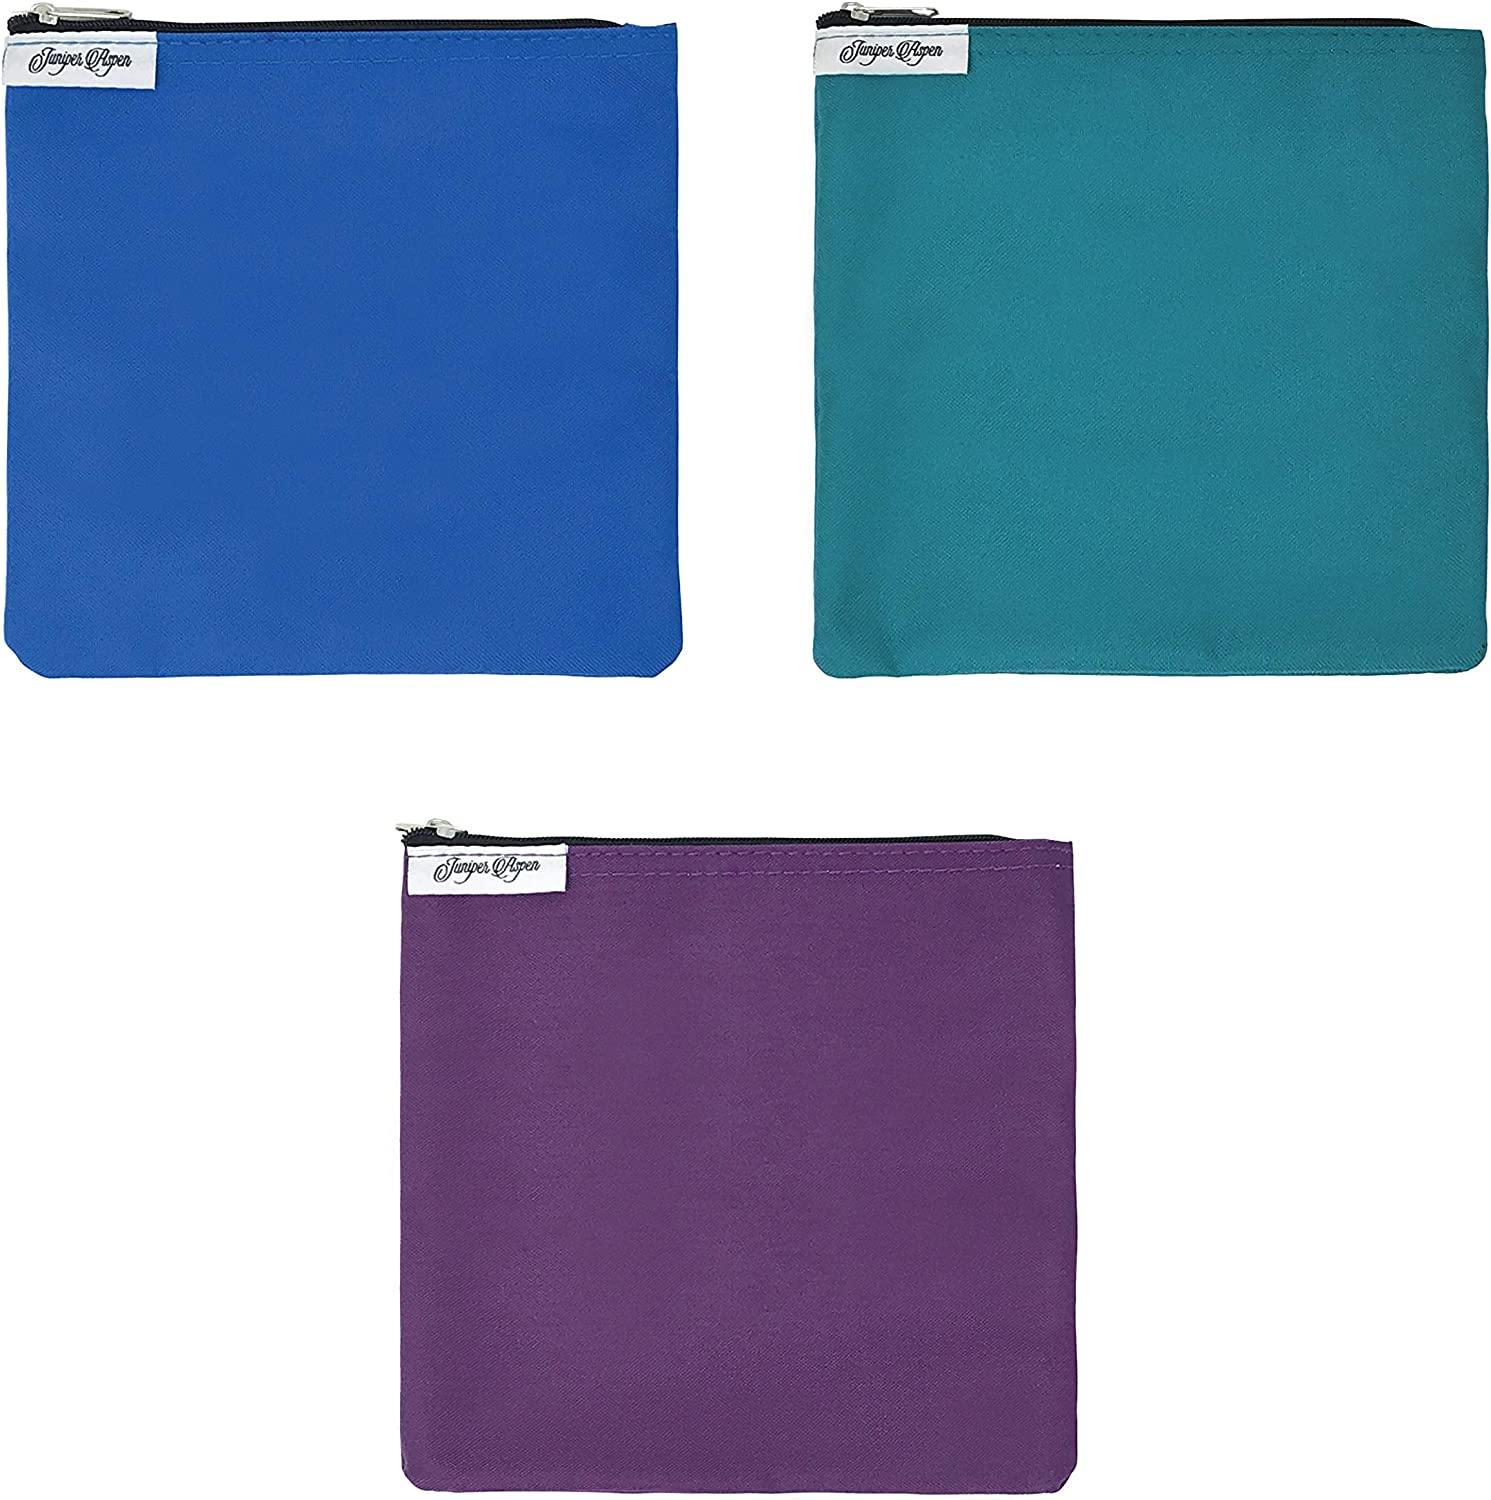 Reusable Sandwich Bags Blue, Turquoise, Purple: 3 Pack of Large Fabric Snack Baggies with Zipper, Food Safe, Dishwasher Safe Fabric Bag Set, Eco Friendly